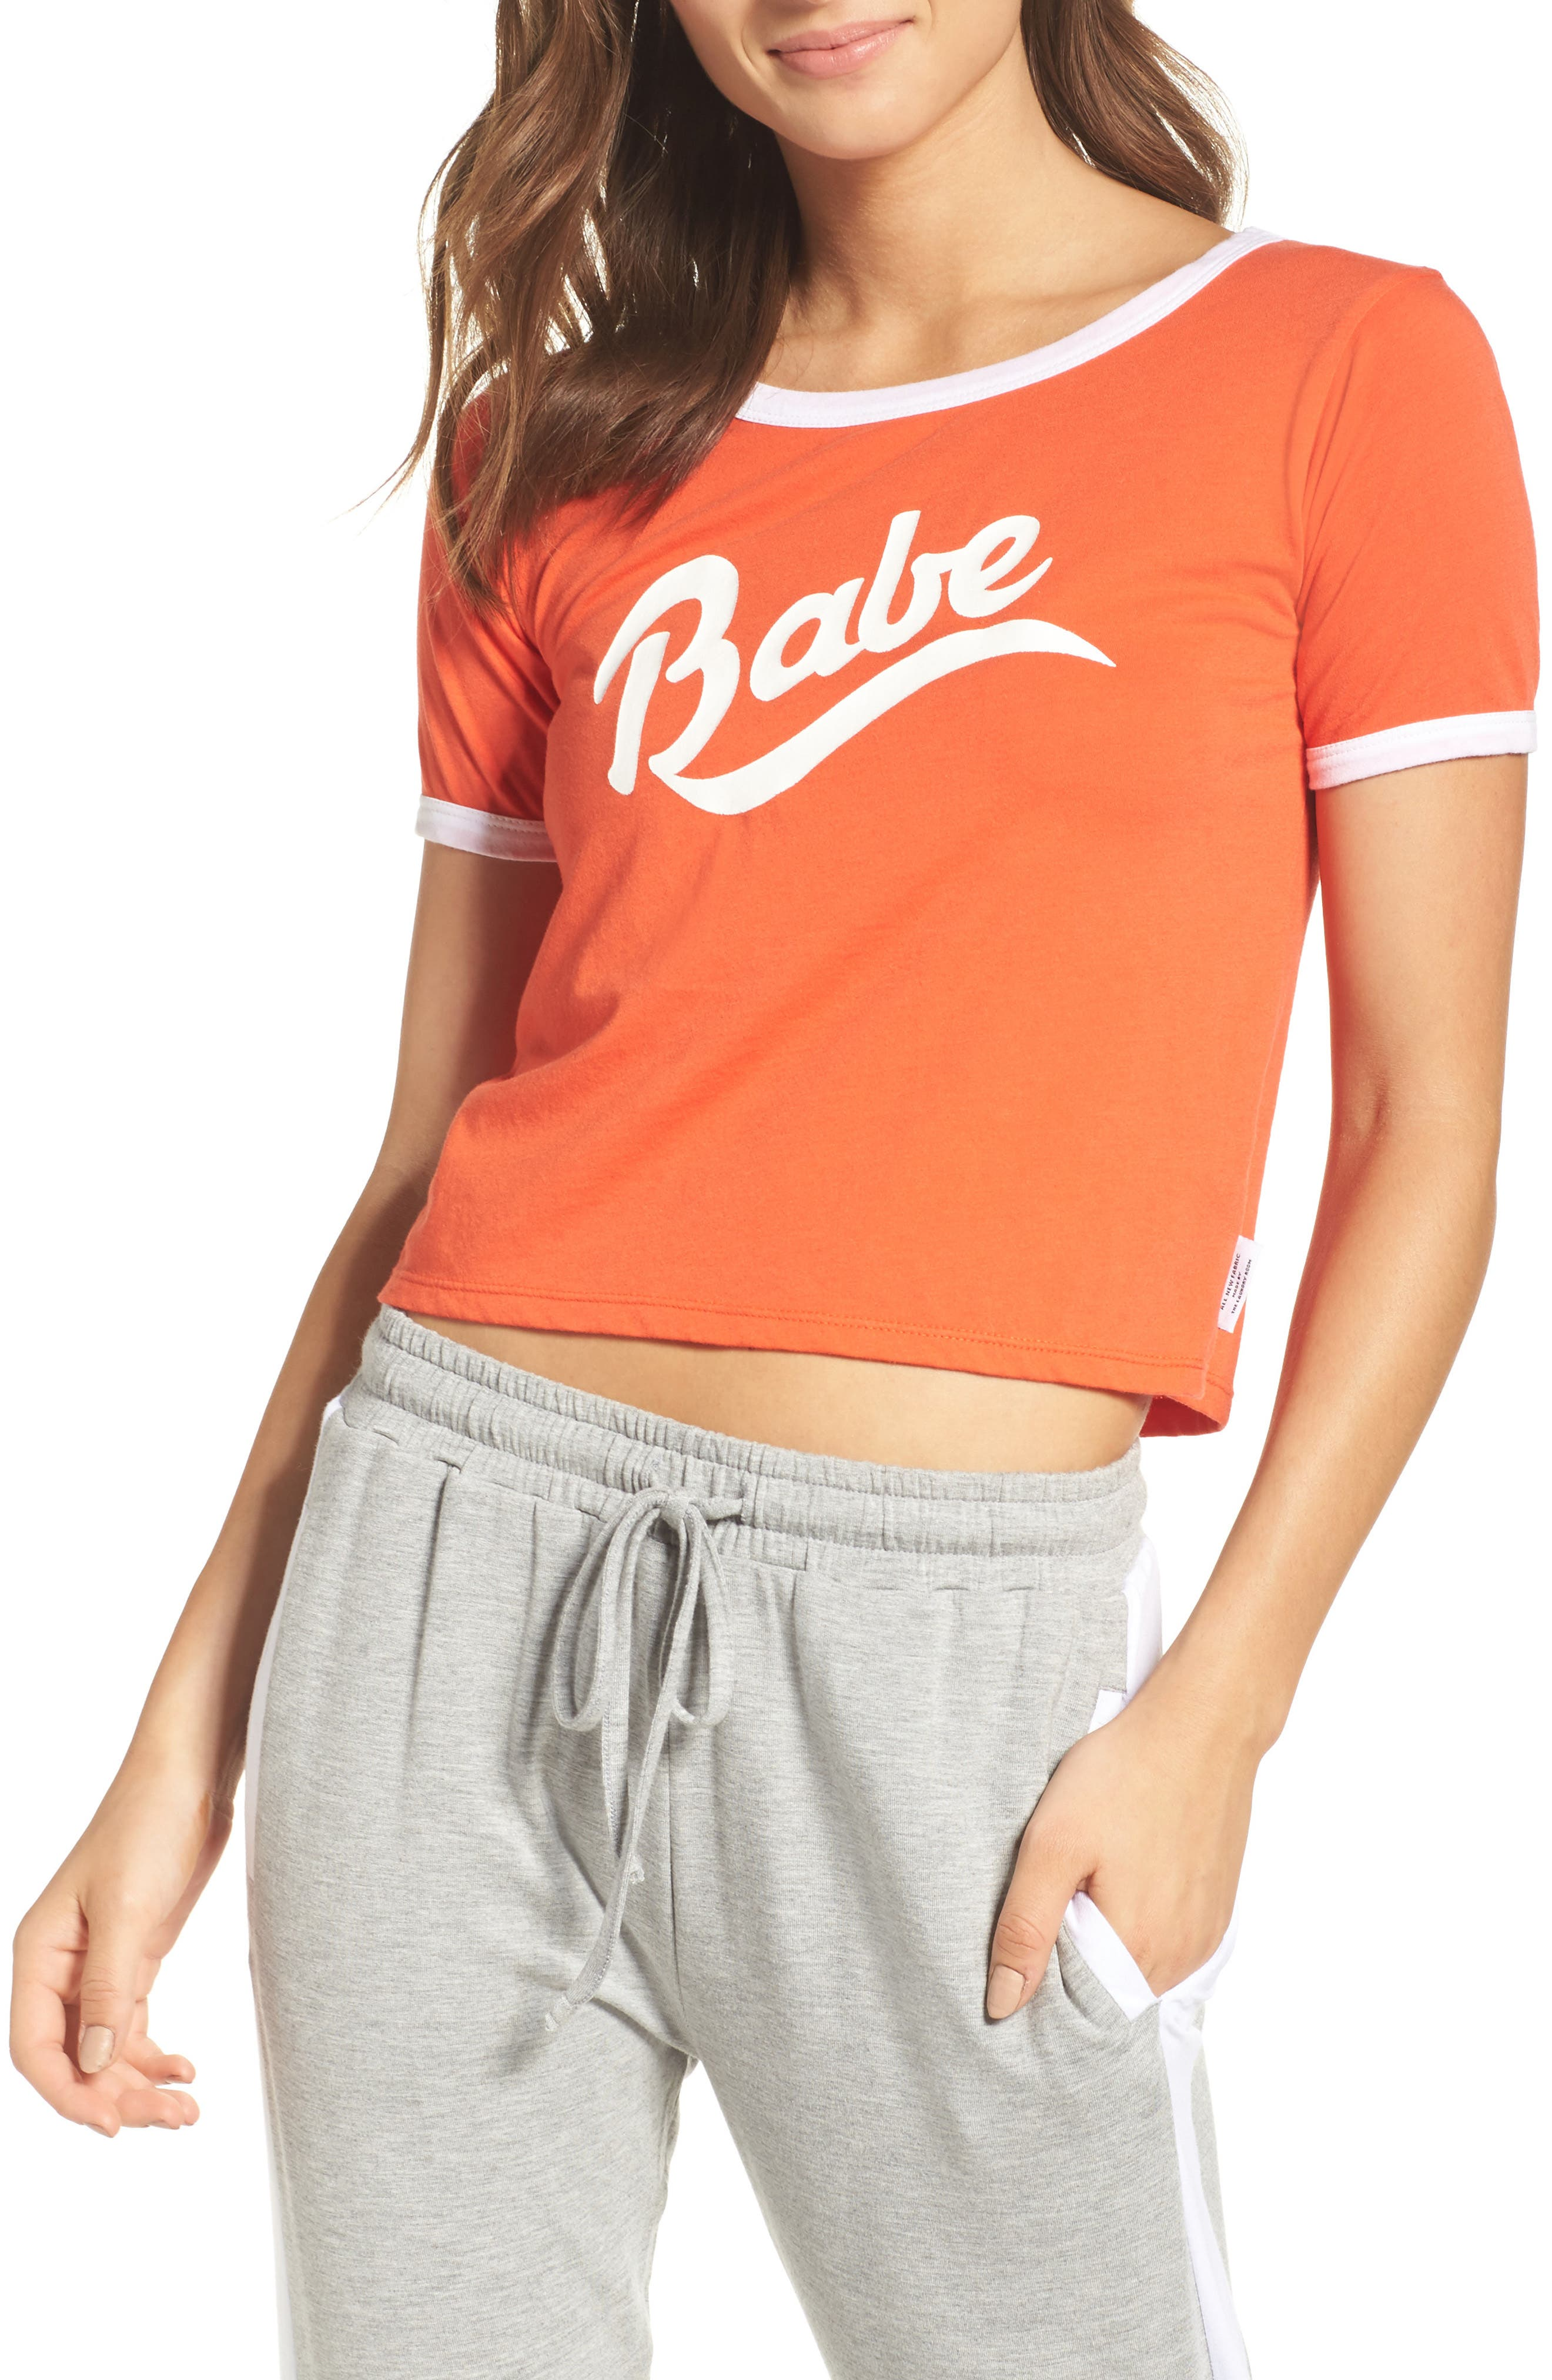 Babe Tee,                         Main,                         color, Red Hot